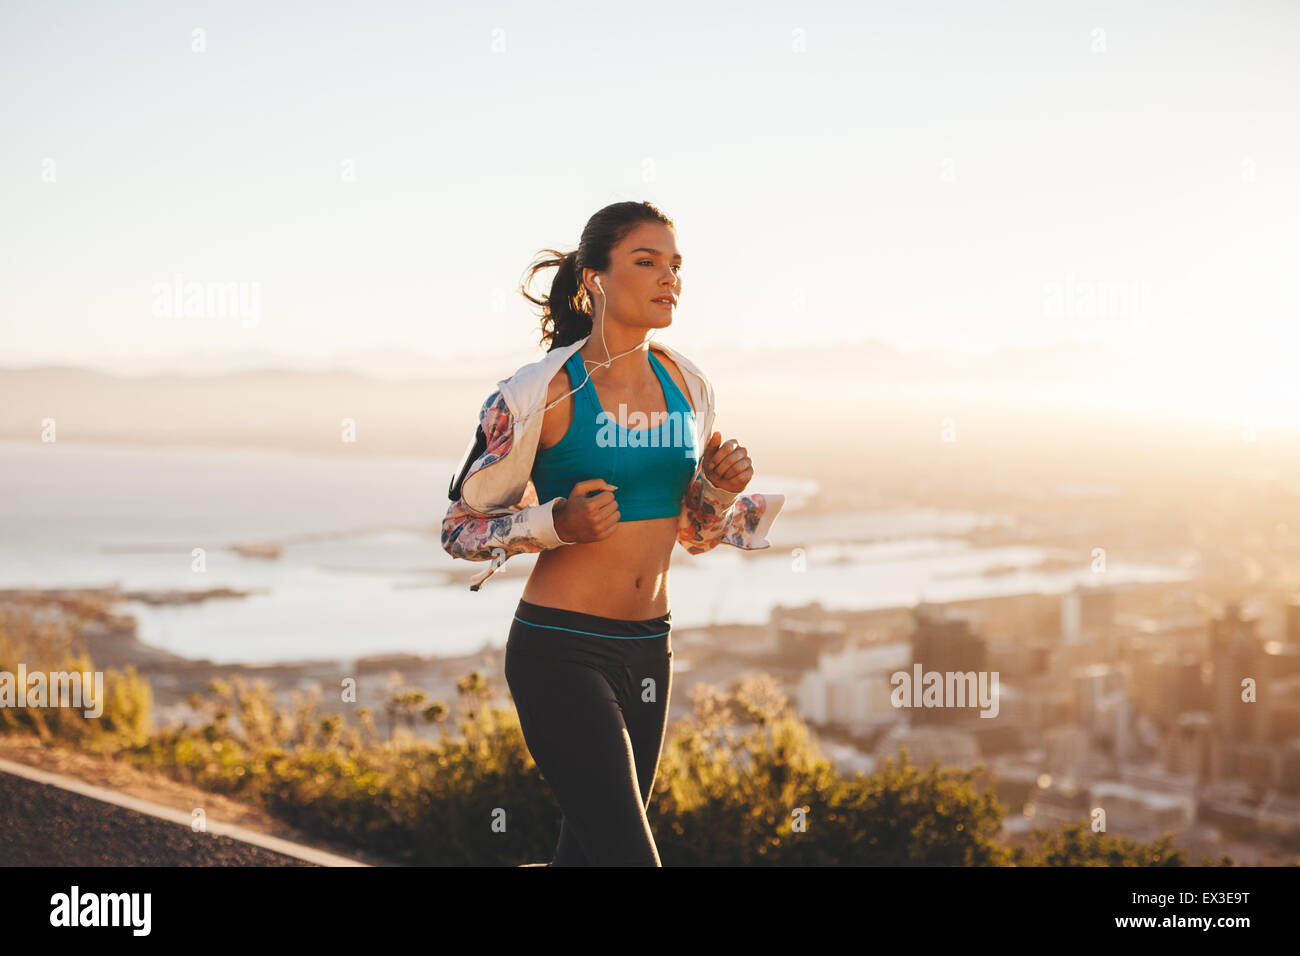 Fit young woman jogging outdoors. Female athlete on morning run with bright light. - Stock Image